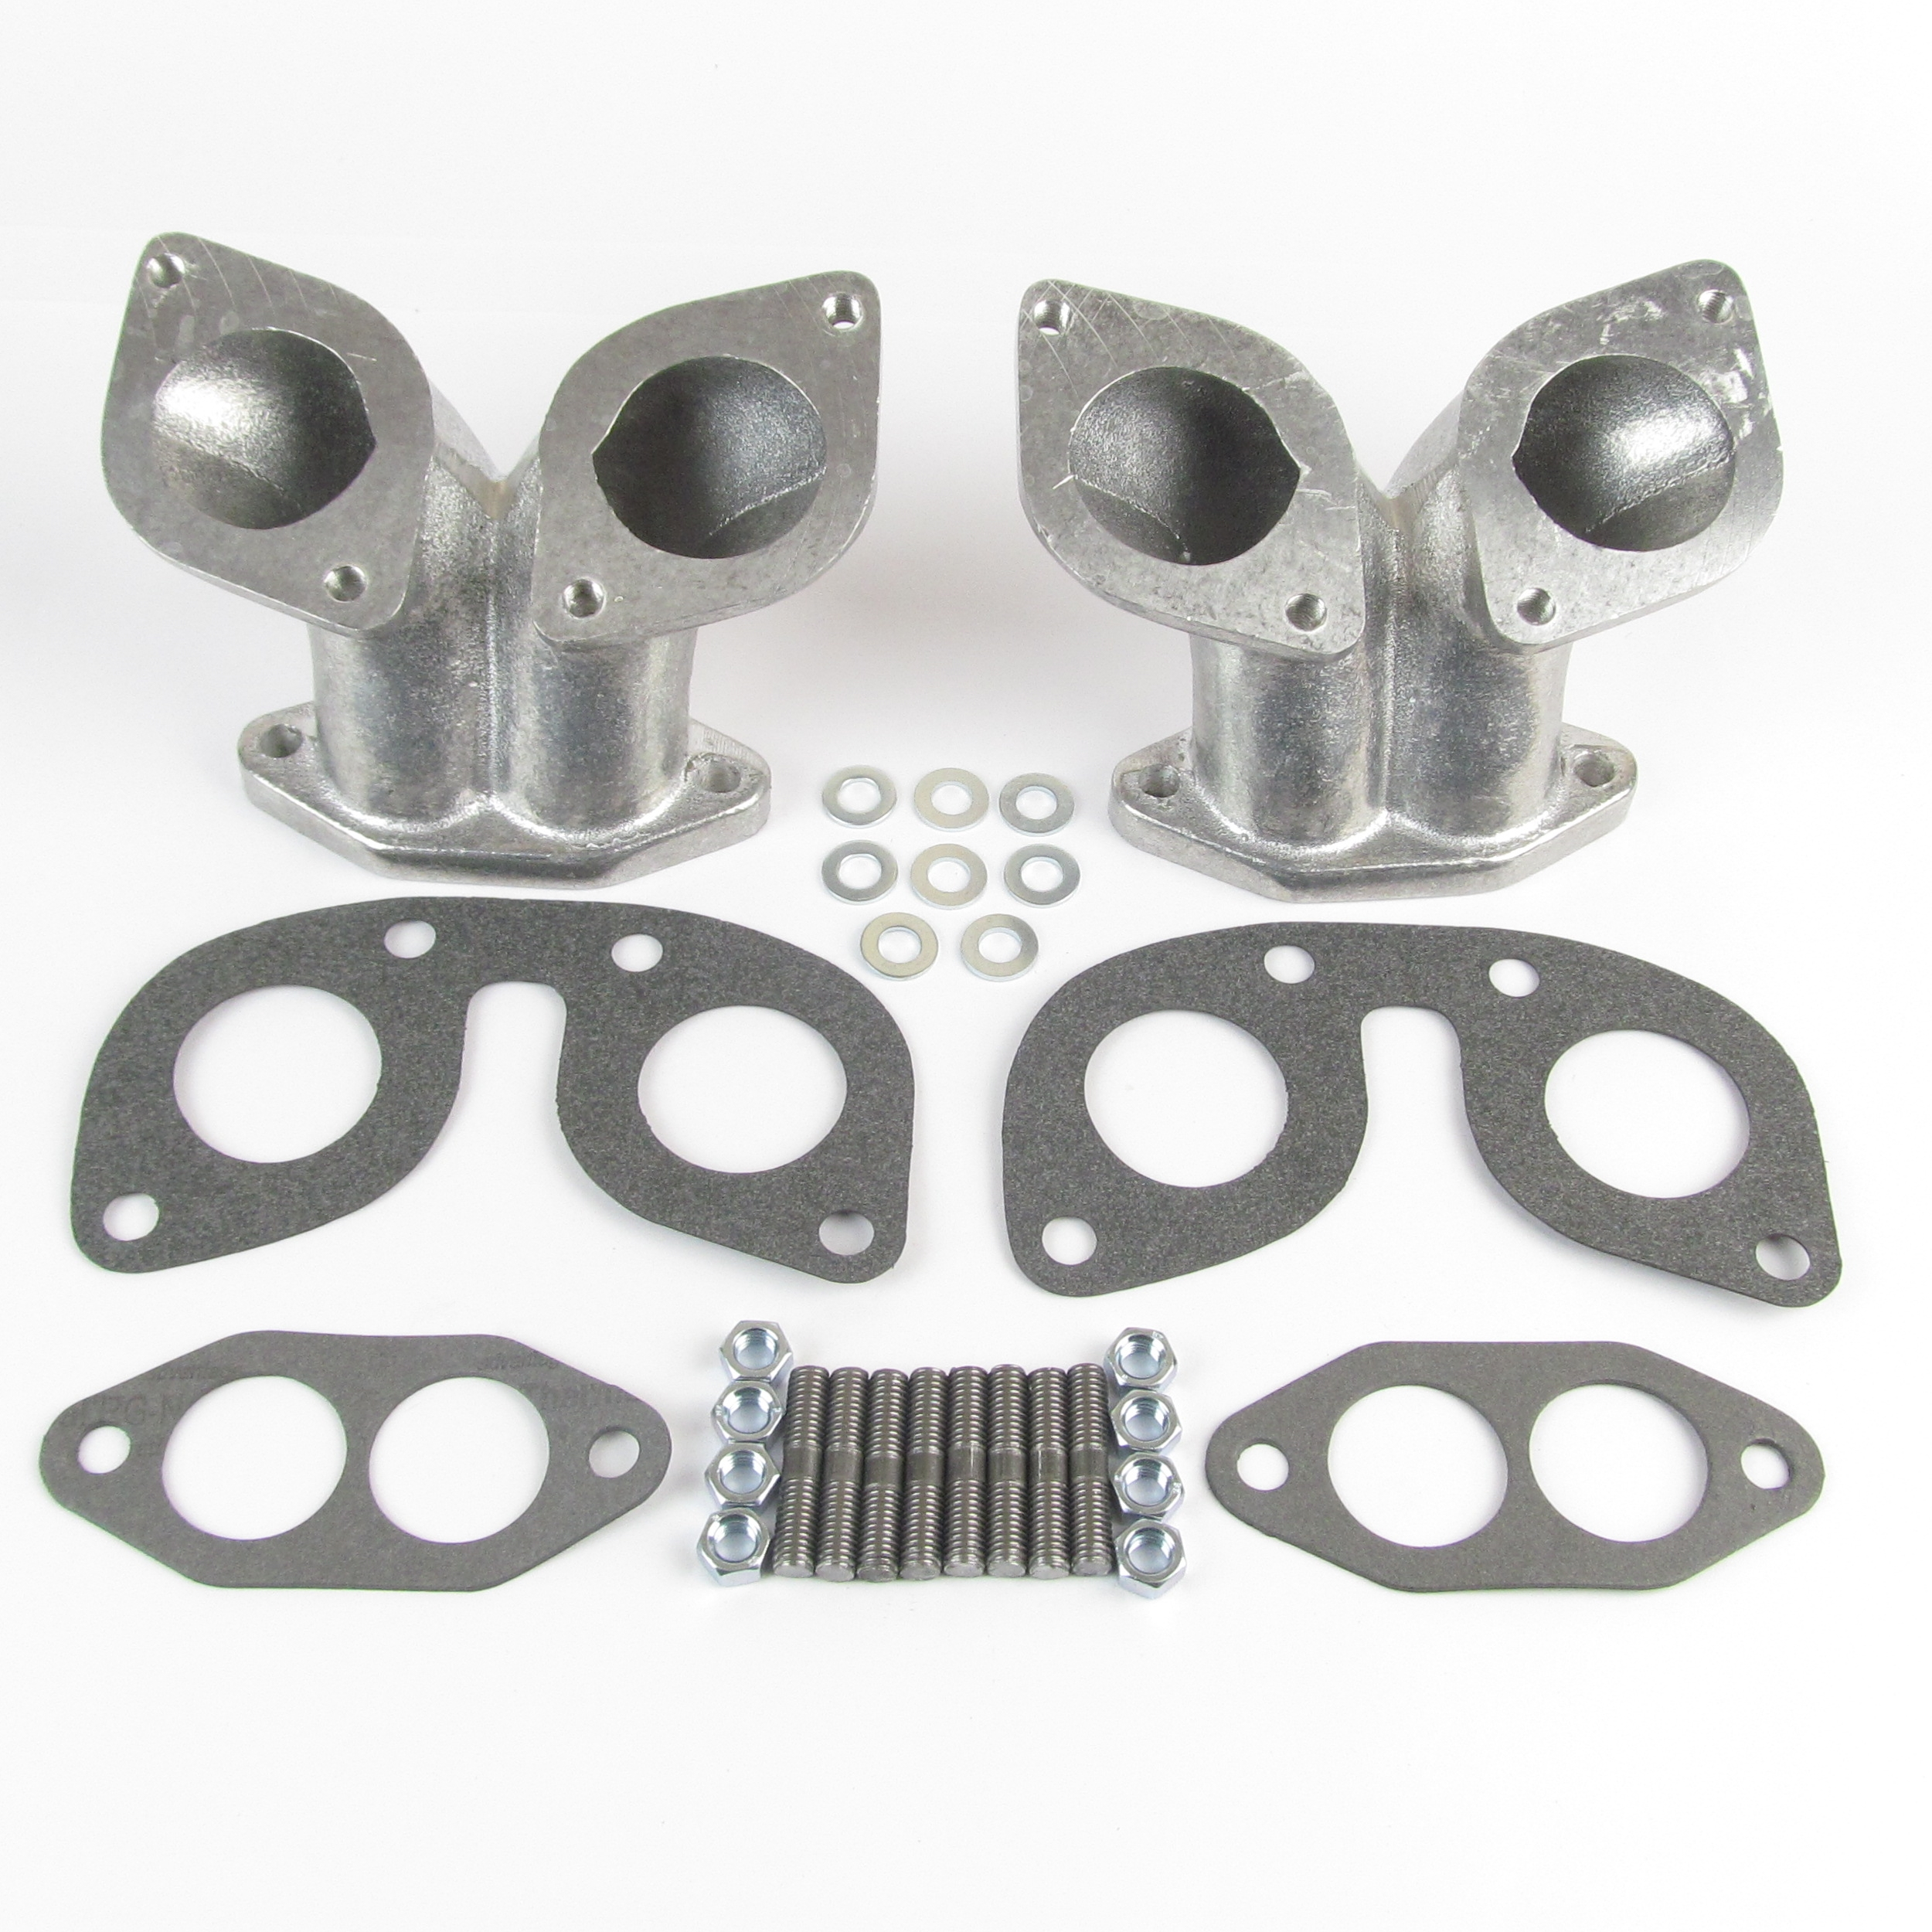 CLASSIC VW BEETLE / CAMPER TYYPPI 3 INLET MANIFOLD KIT WEBER / DELLORTO DRLA / IDF CARBS